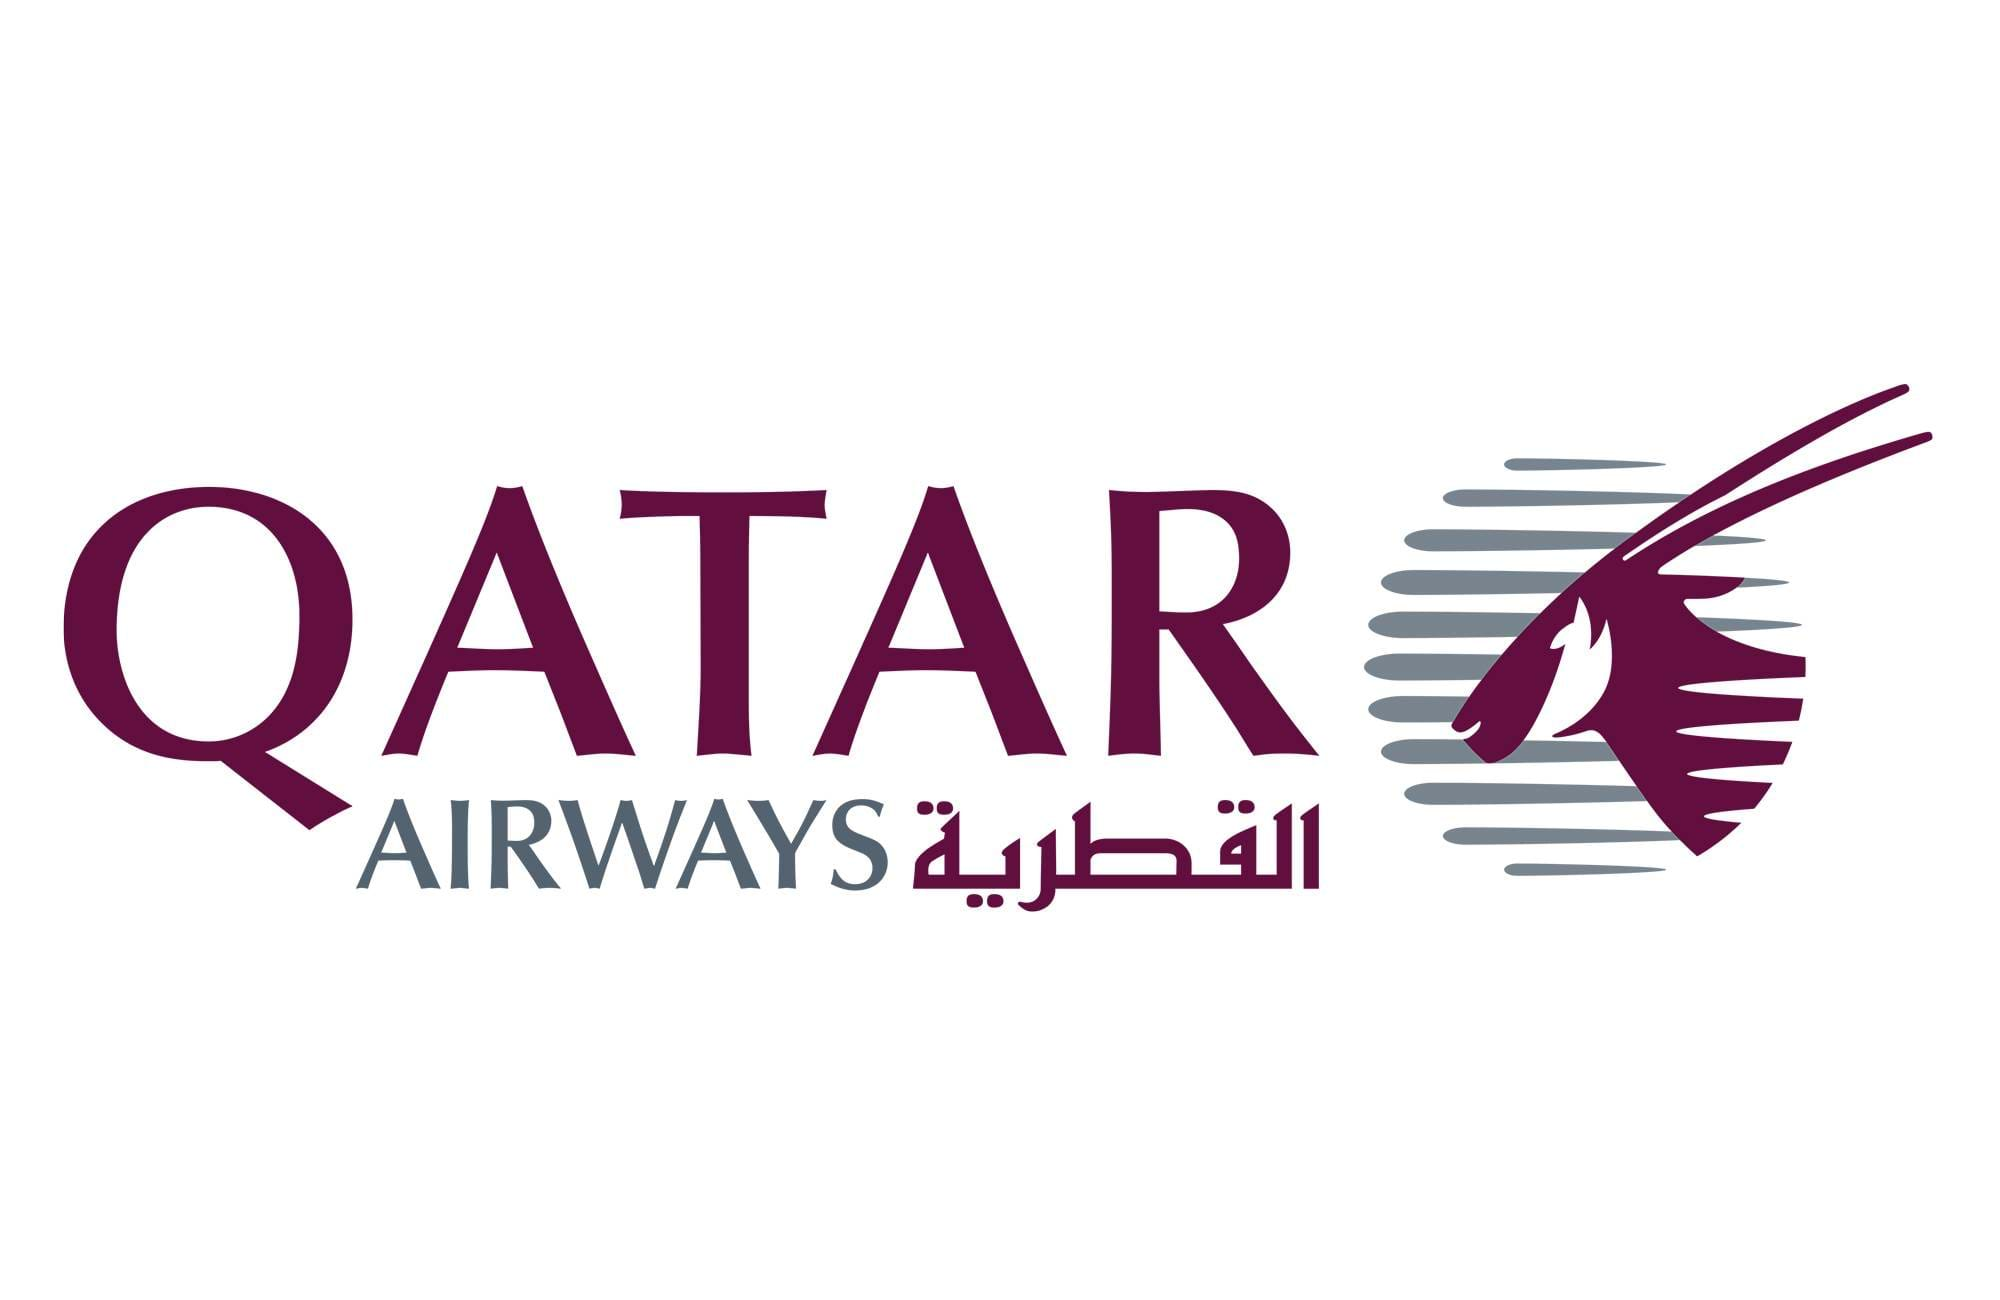 qatar-airways-logo-2000x1300